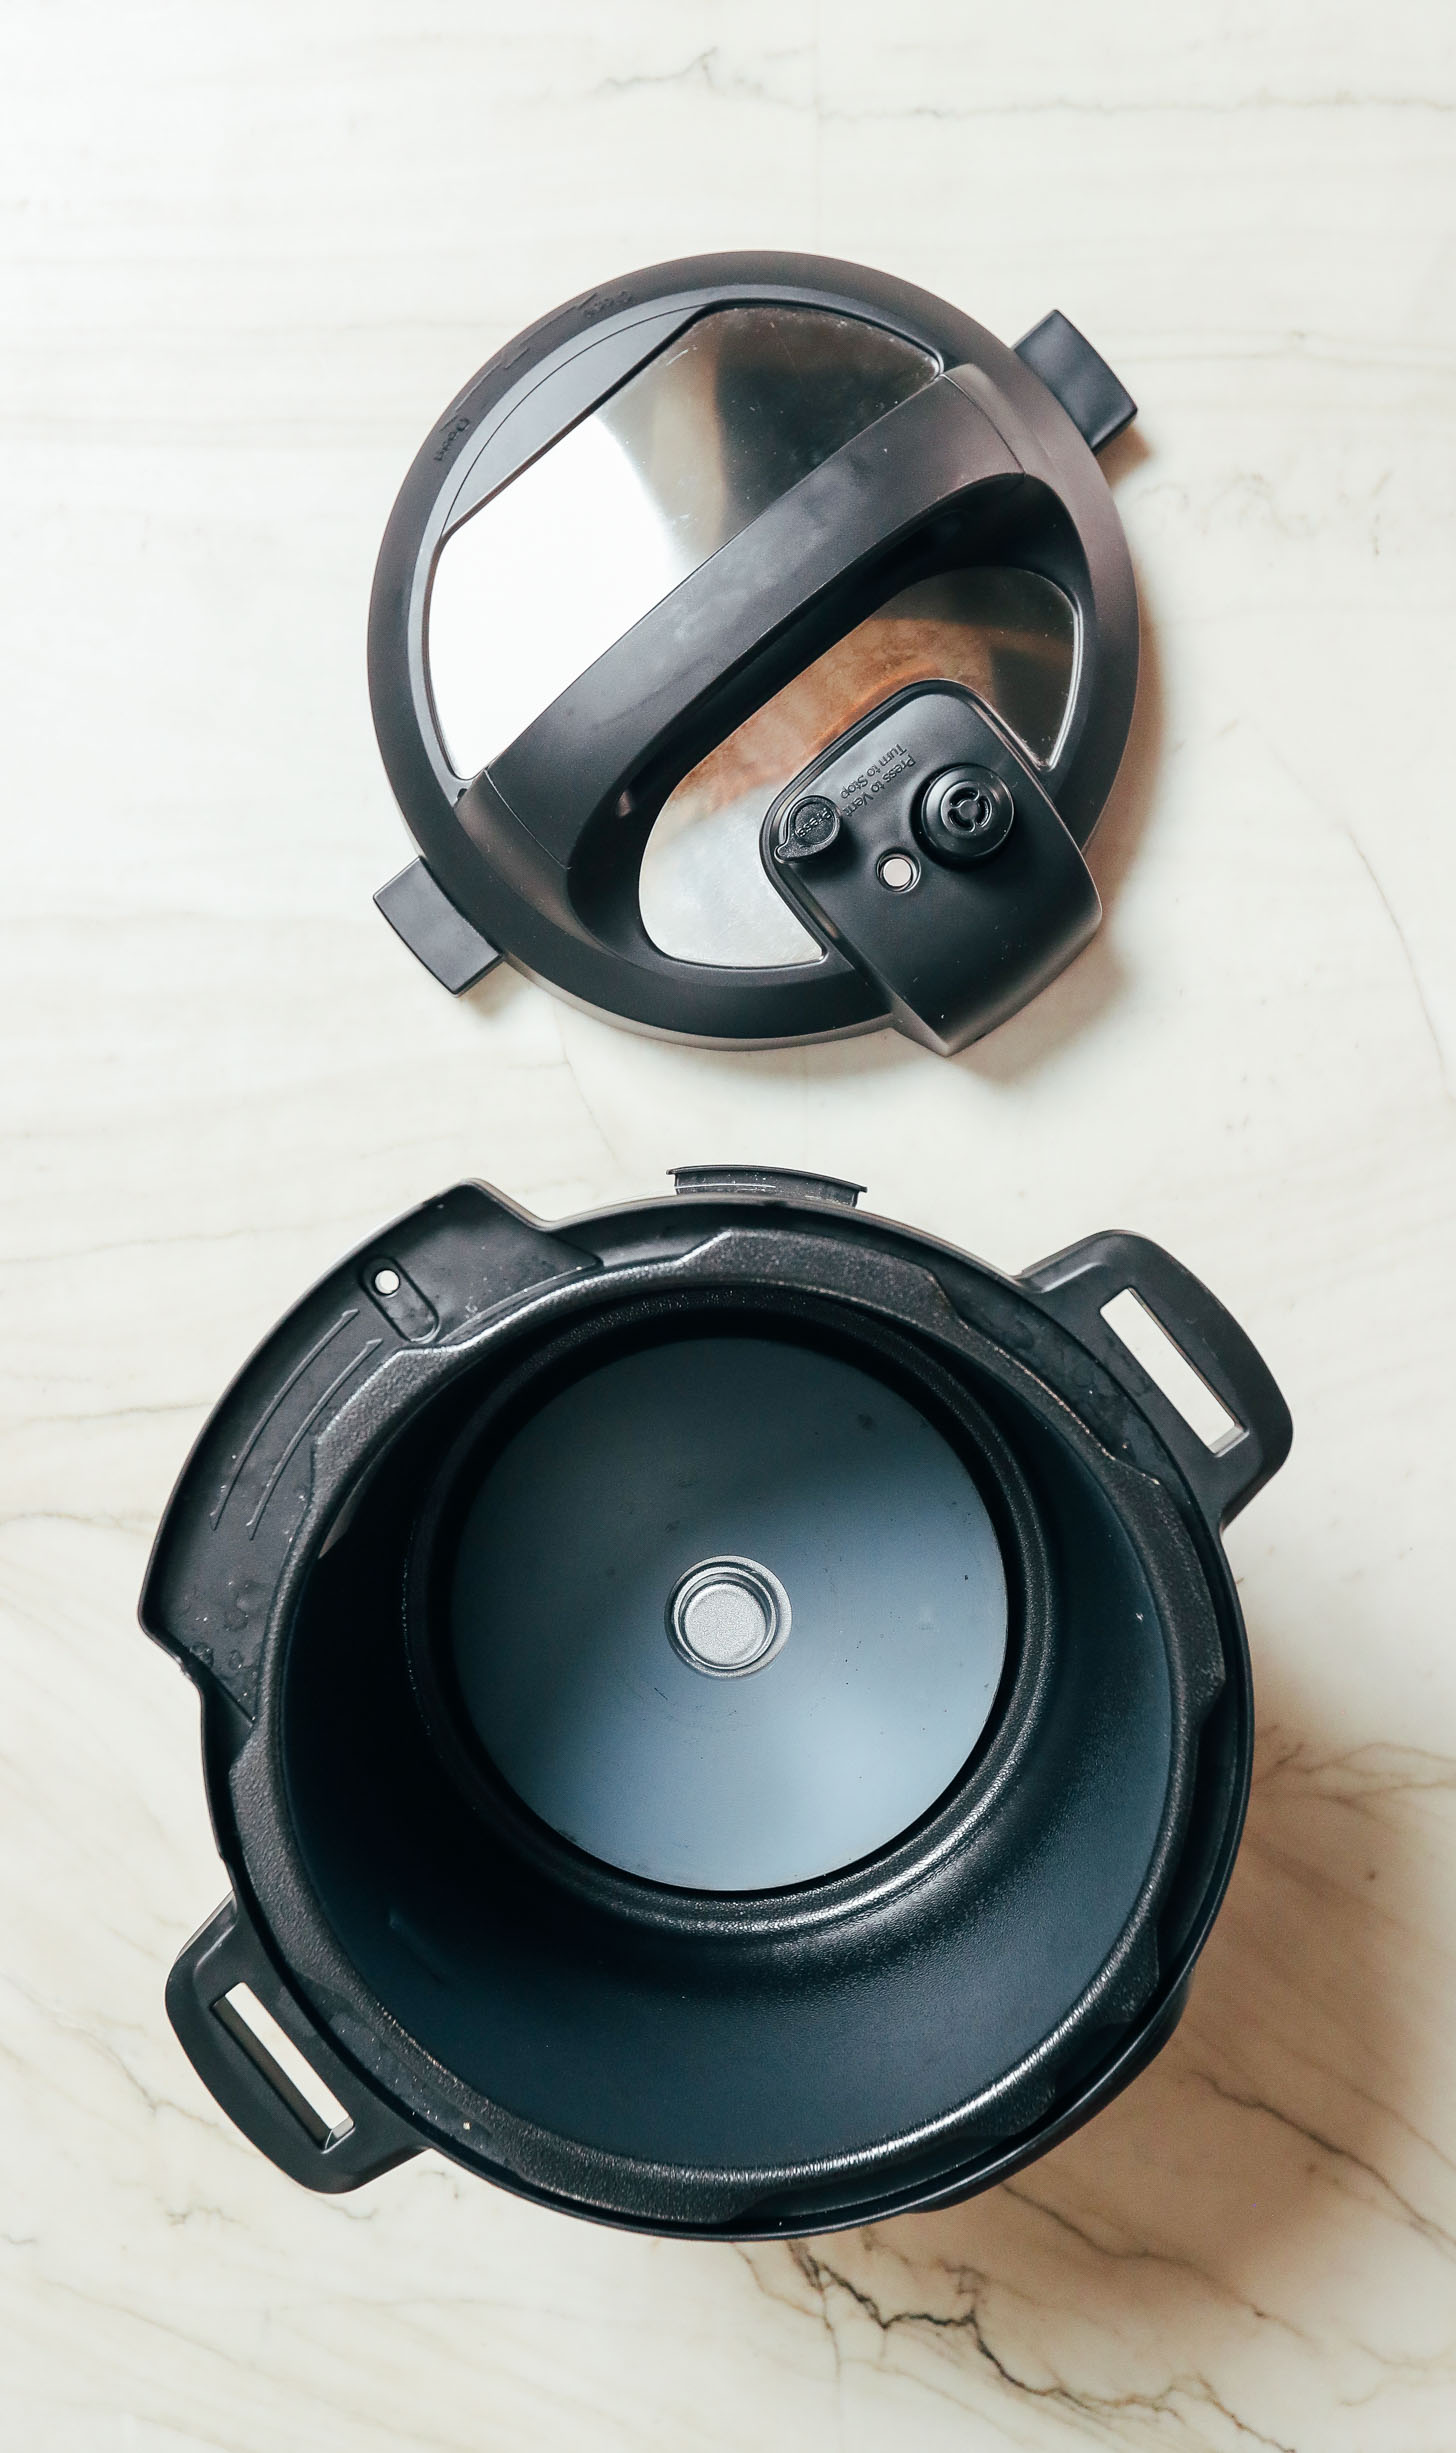 Lid and base of the Instant Pot Duo Nova